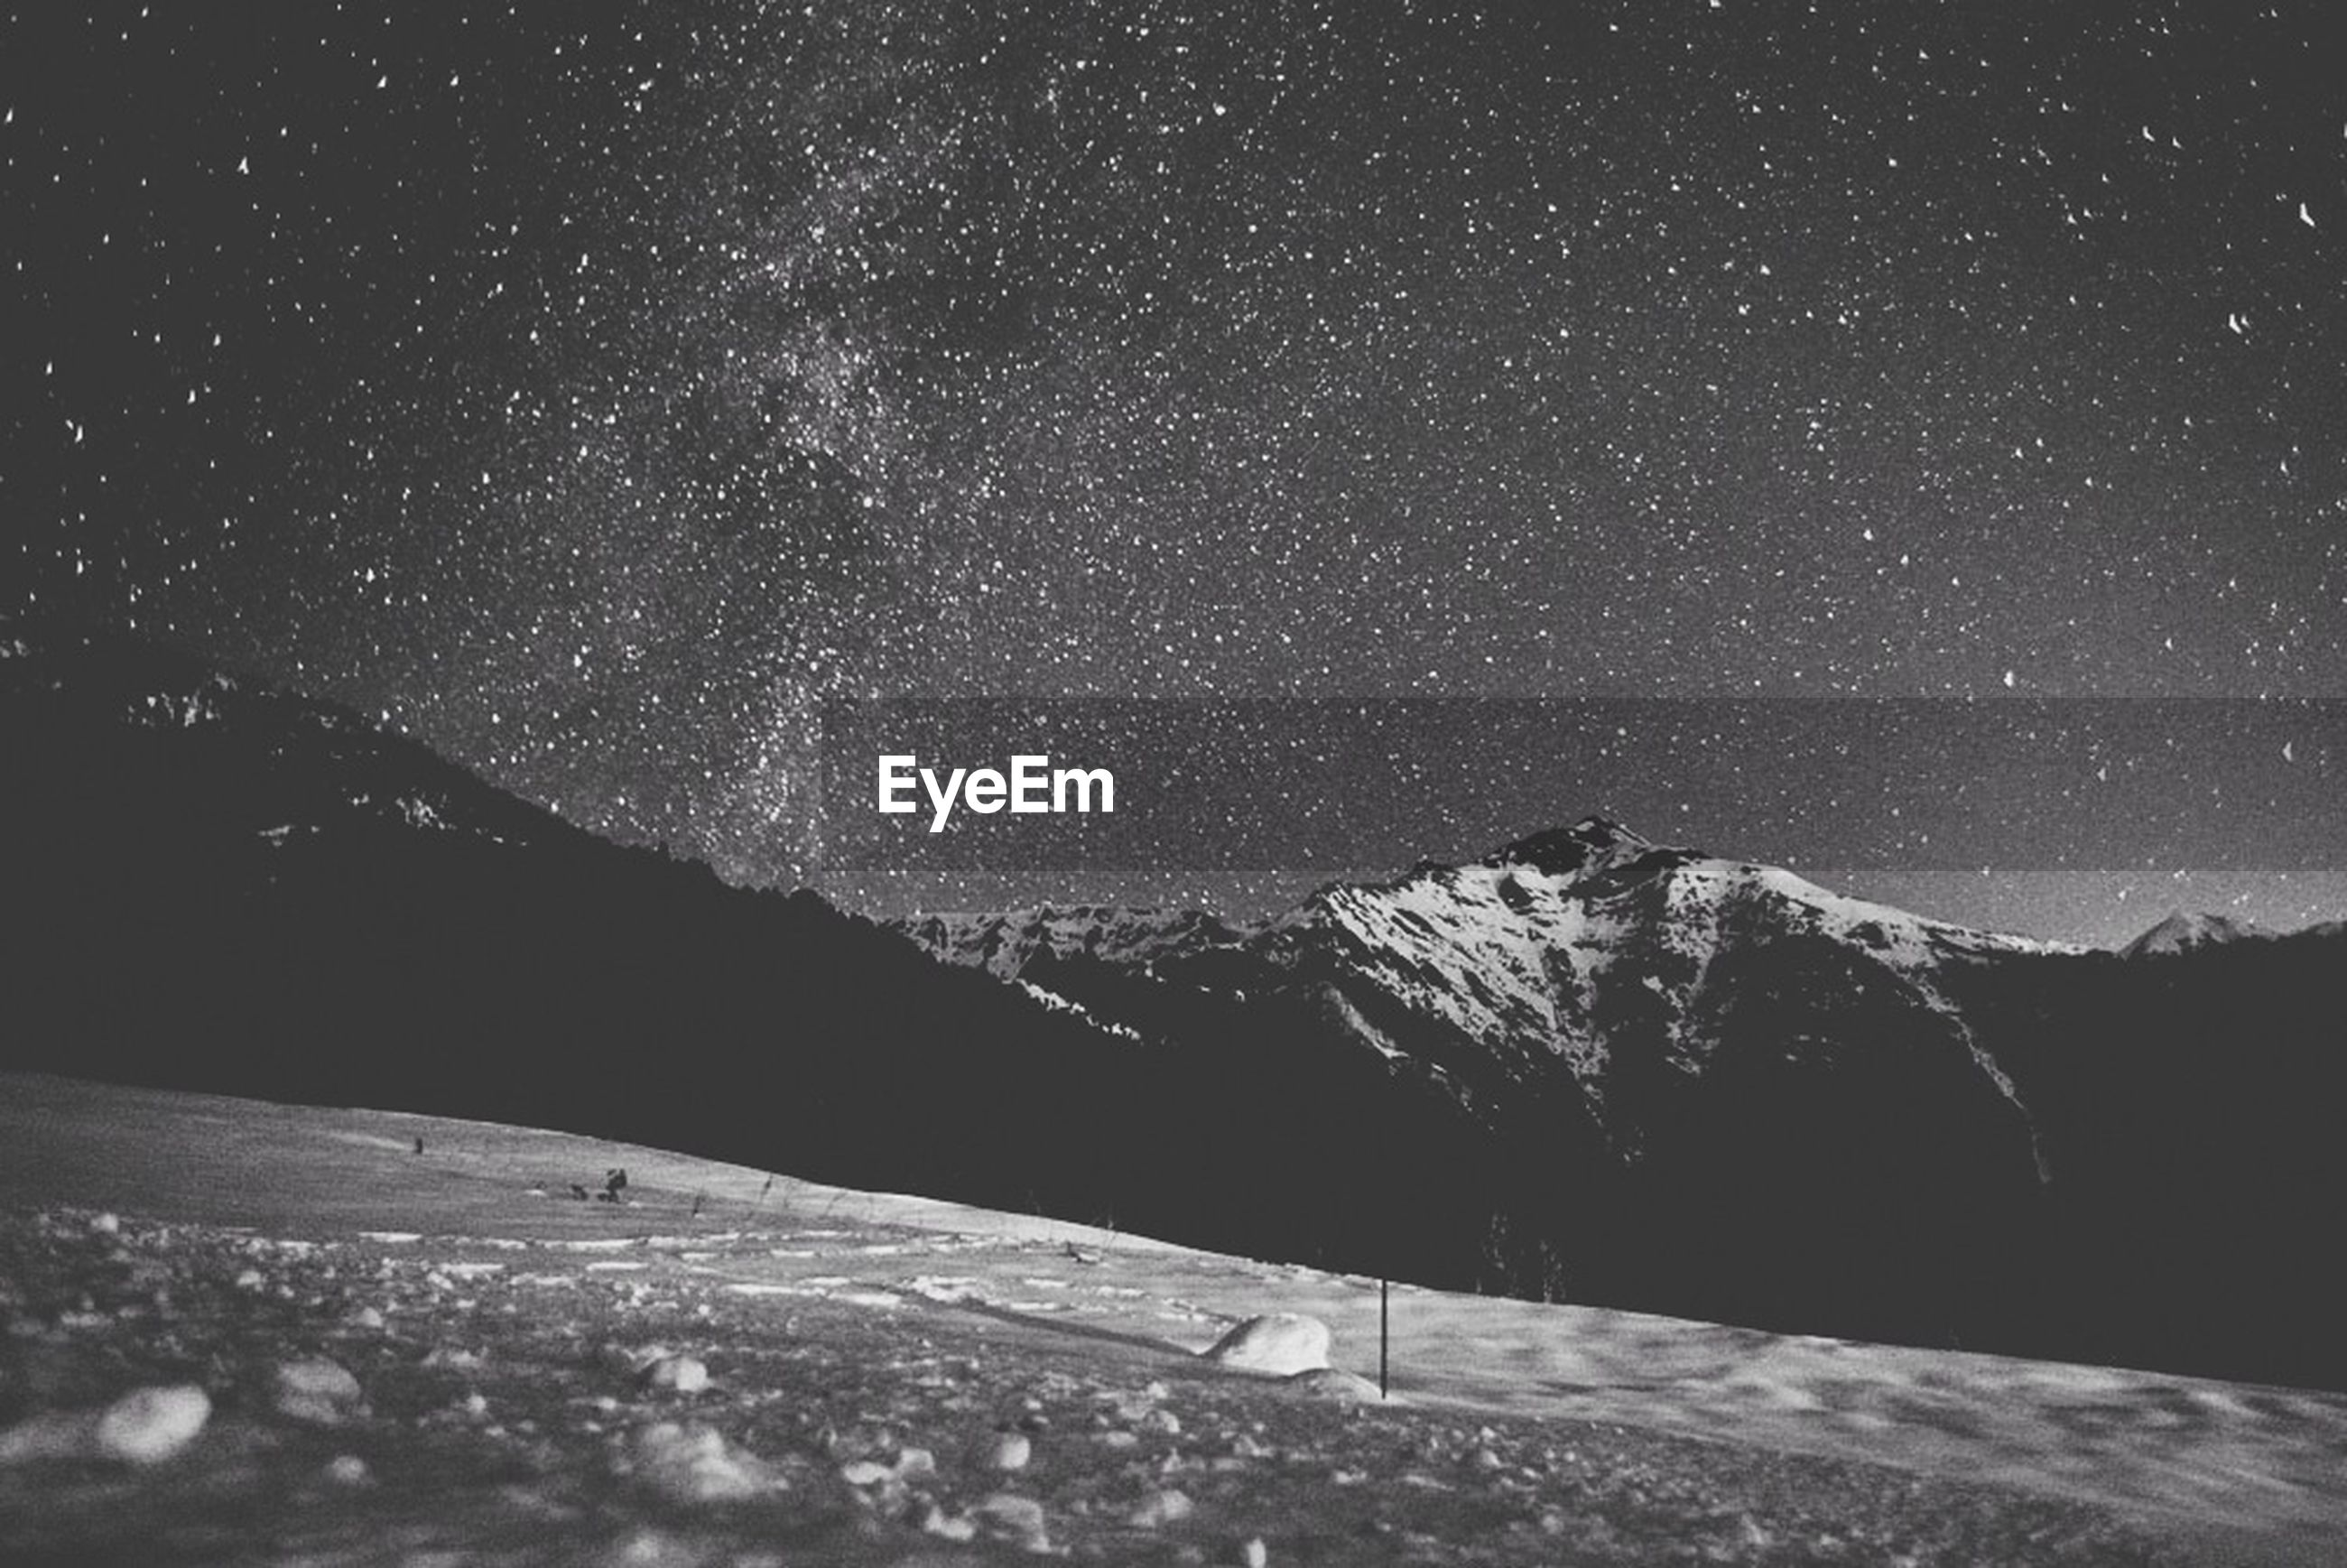 Scenic view of mountain against star filled sky